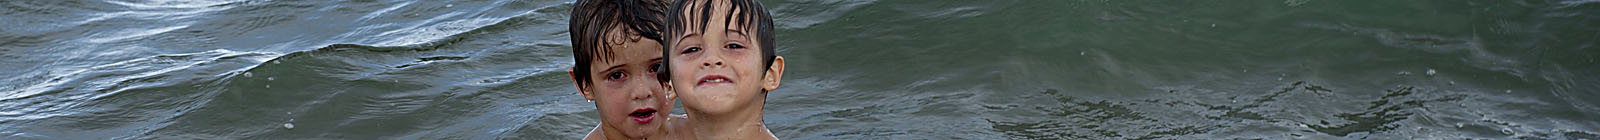 Chachalacas Beach, boys in water. - Banner